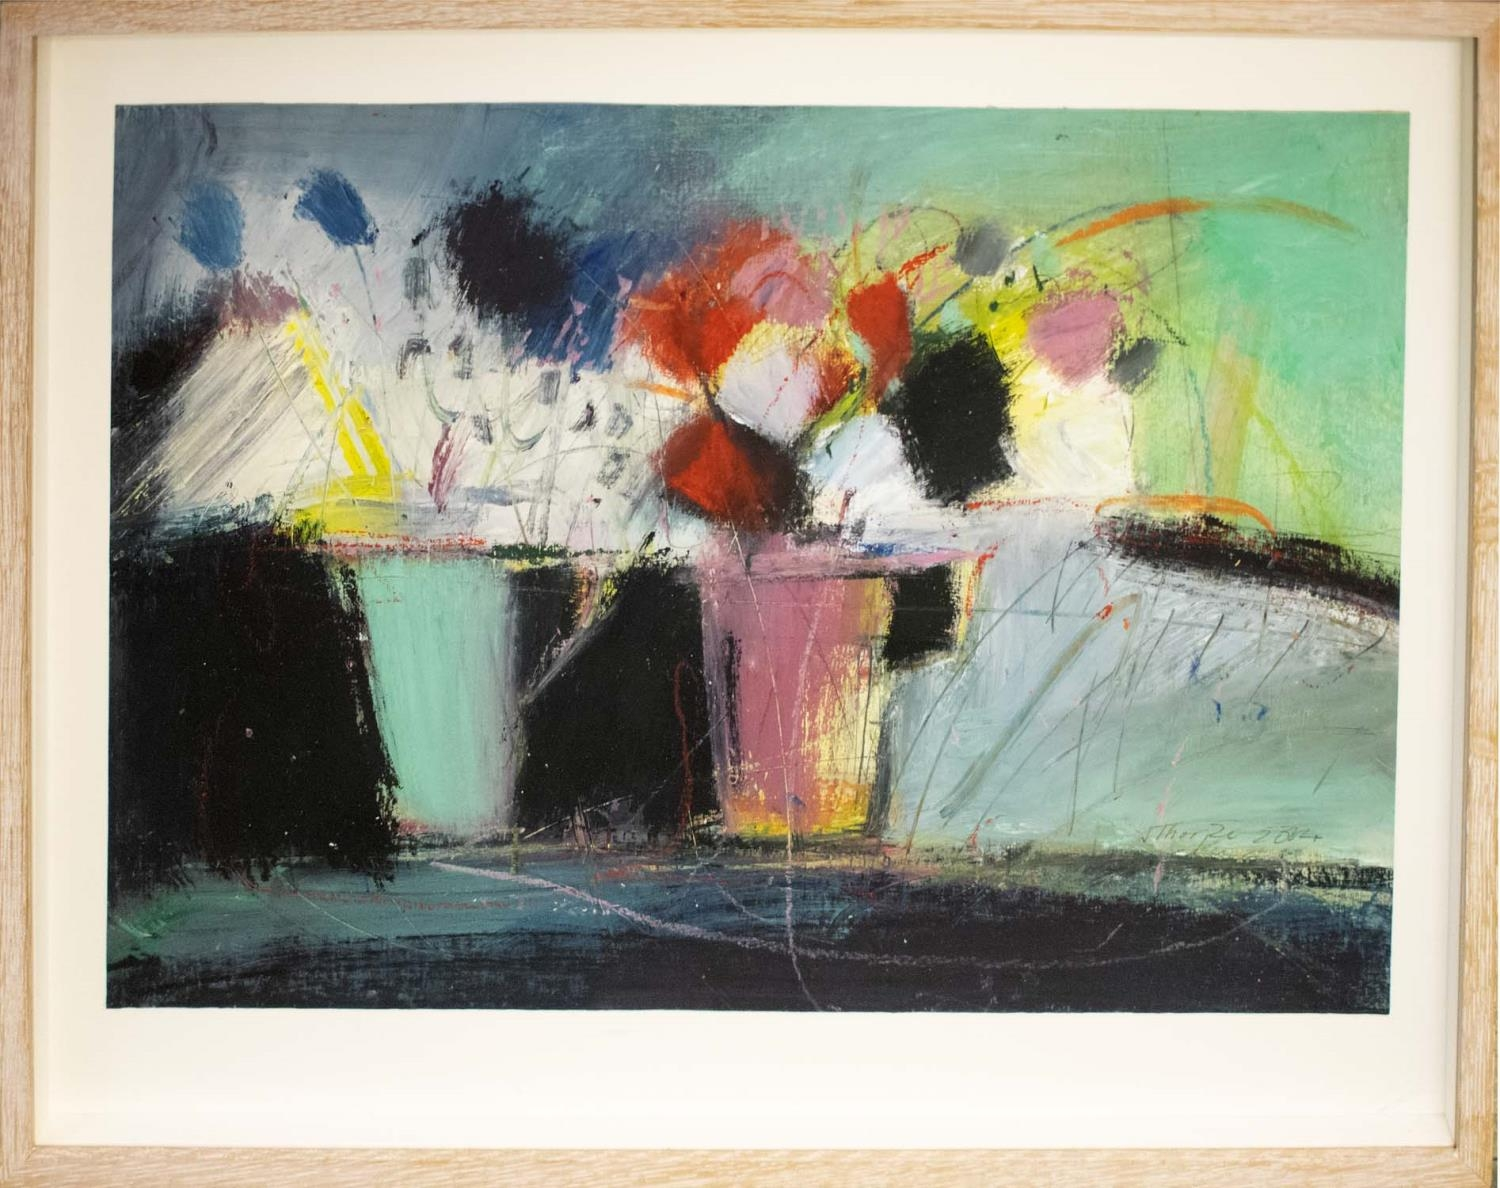 JUSTINE LOIS THORPE (Contemporary British) 'Still Life with Cups of Flowers', 2014, pastel, - Image 2 of 8